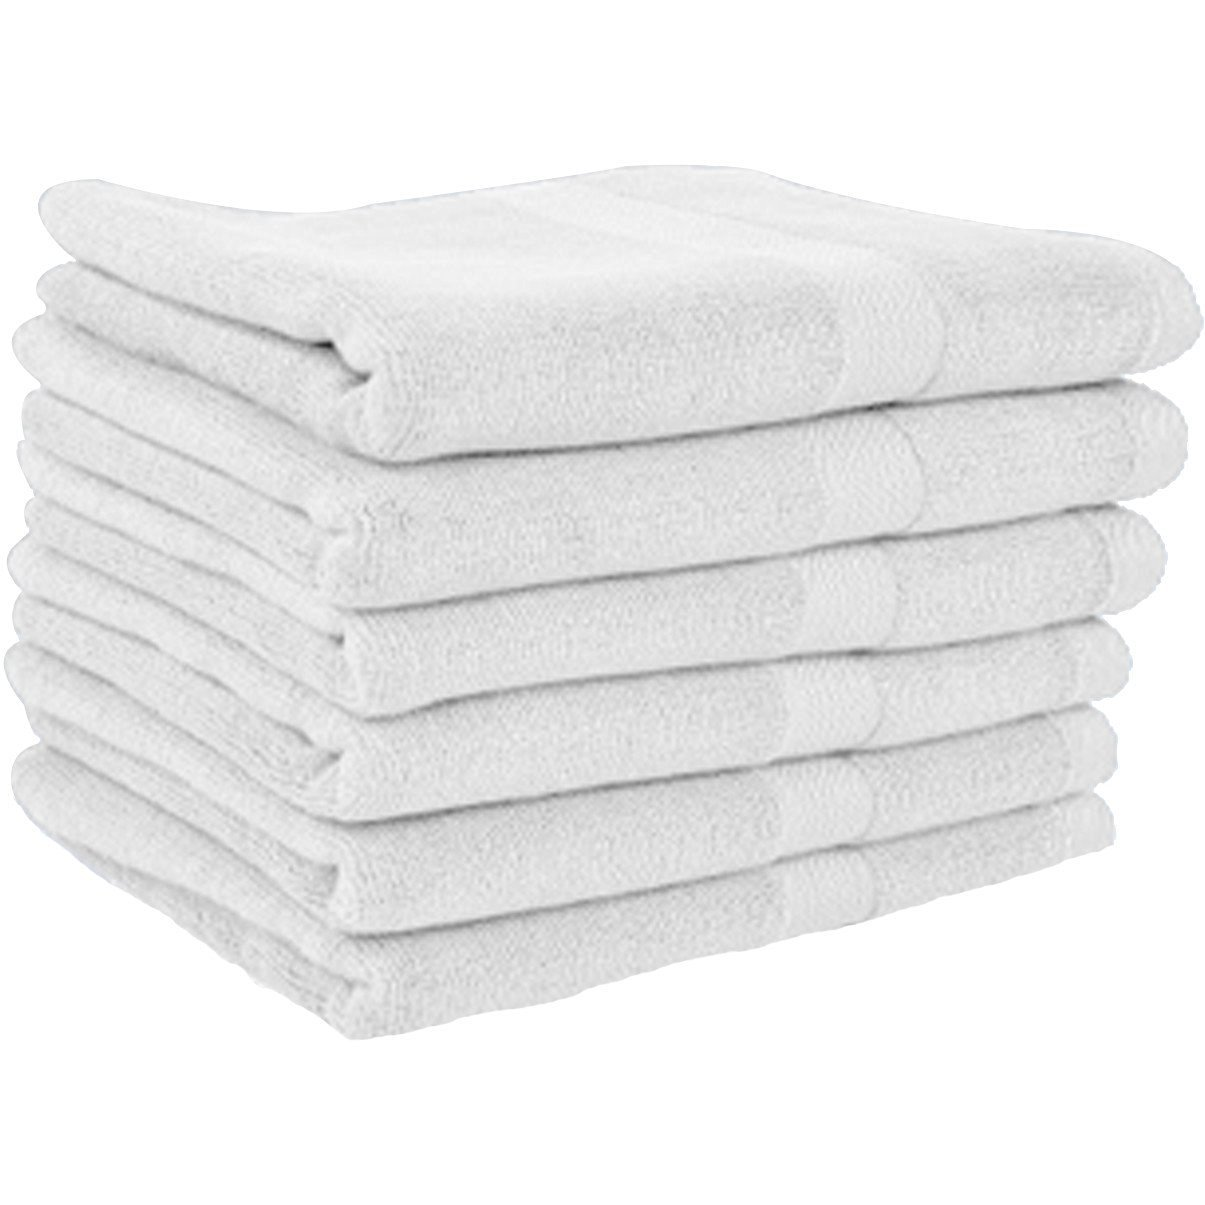 American Terry Mills 100% Cotton Hotel Grade Washcloths-Hand-Face Towels Pack - Extra Soft Ring Spun Cotton Washcloths, Highly Absorbent, 24 Pack